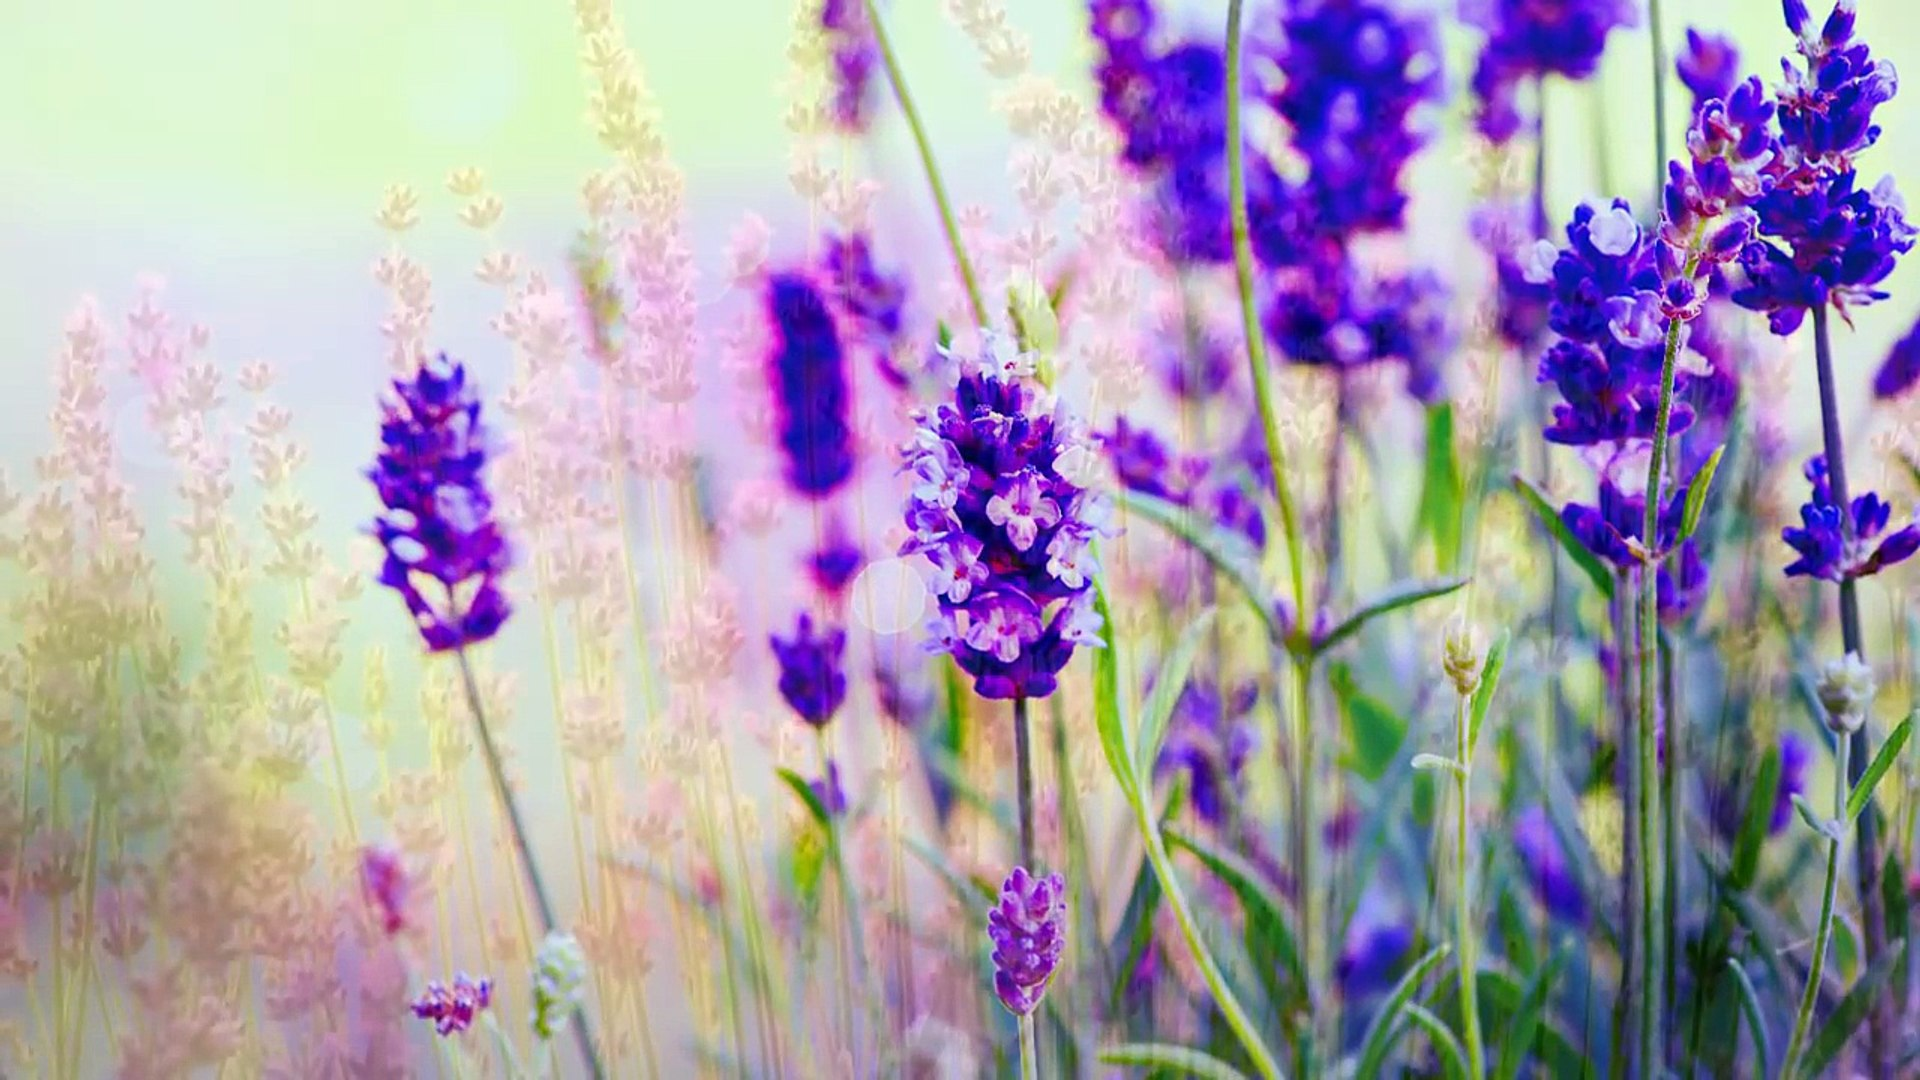 Music for Meditation, Relaxing Music, Music for Stress Relief, Soft Music, Background Musi